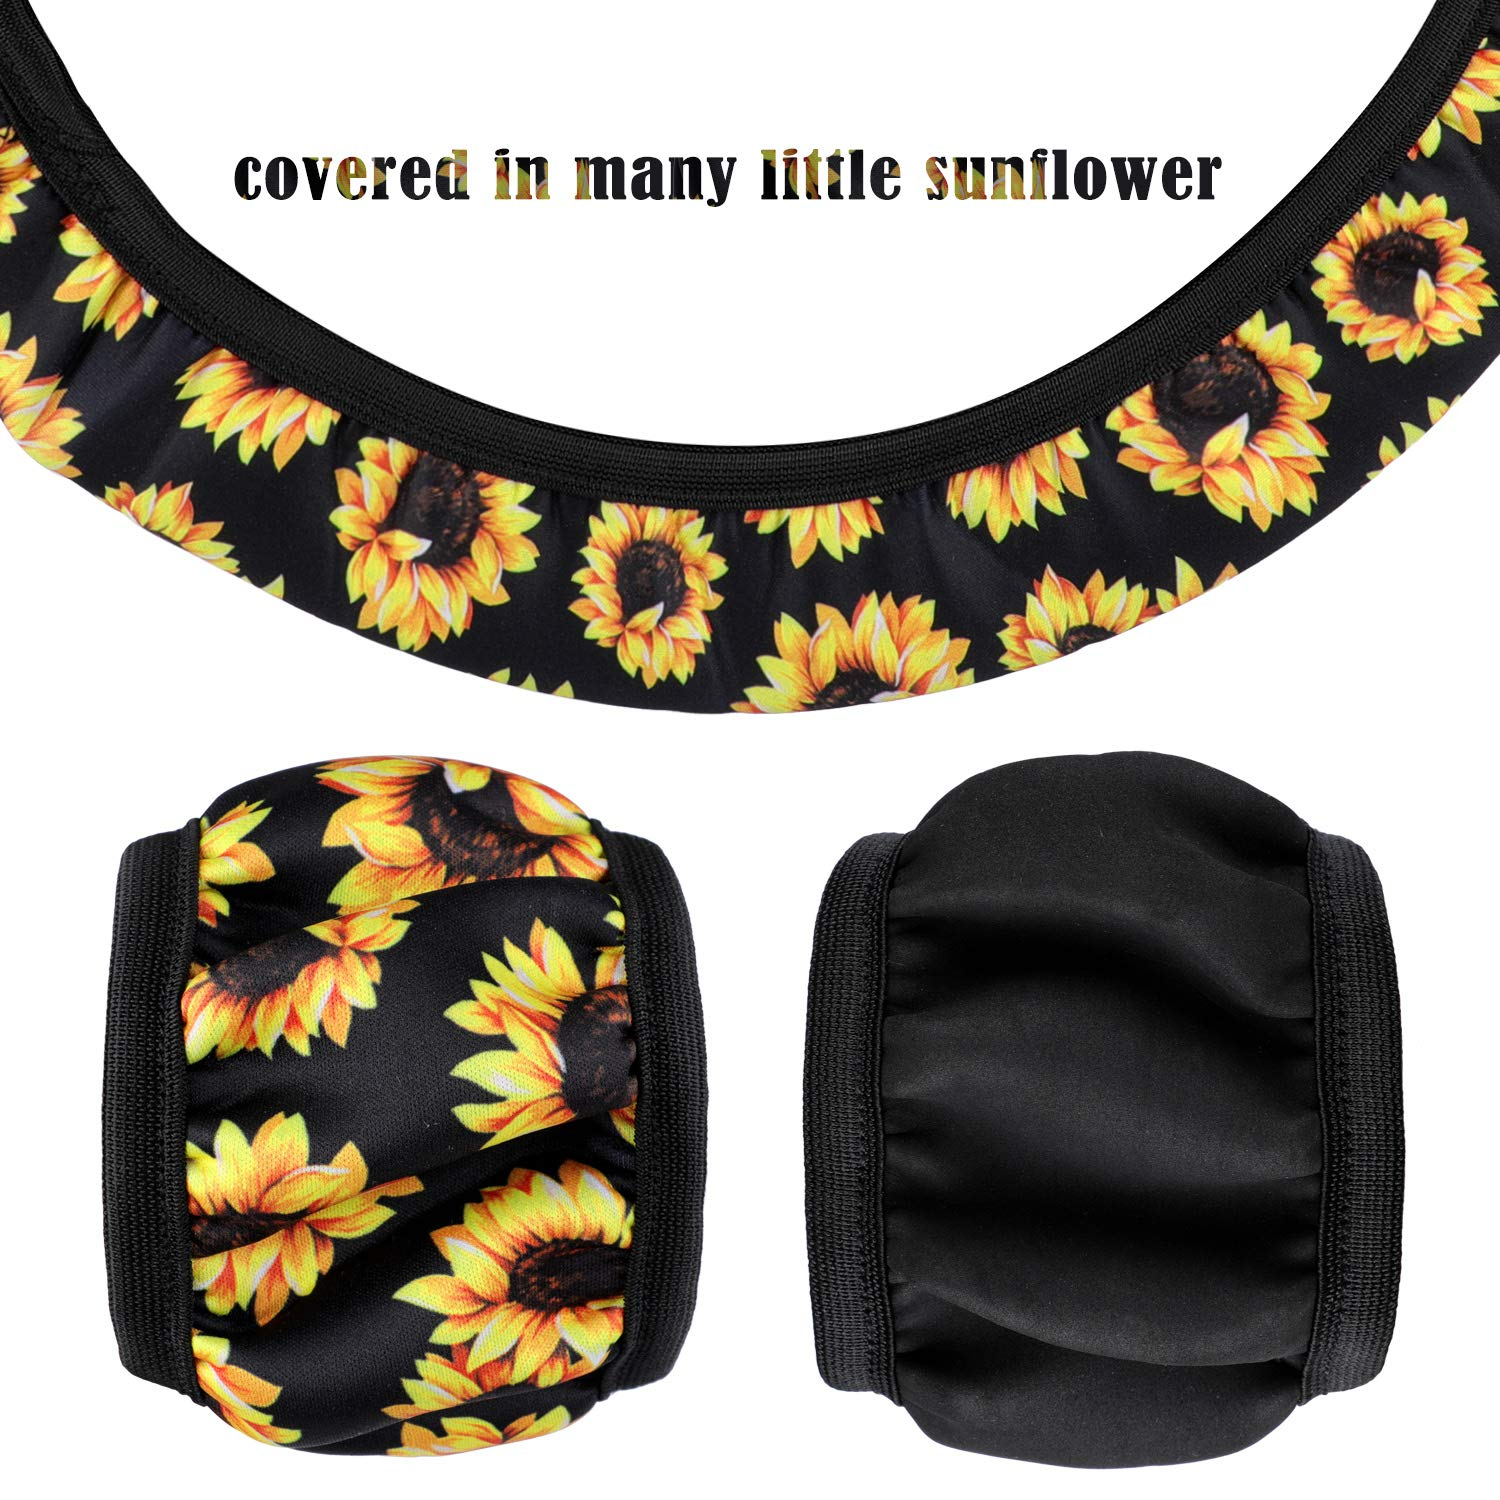 Sunflower Car Accessories Sunflower Steering Wheel Cover with 2 Pieces Cute Sunflowers Keyring and 2 Piece Car Vent Decorations